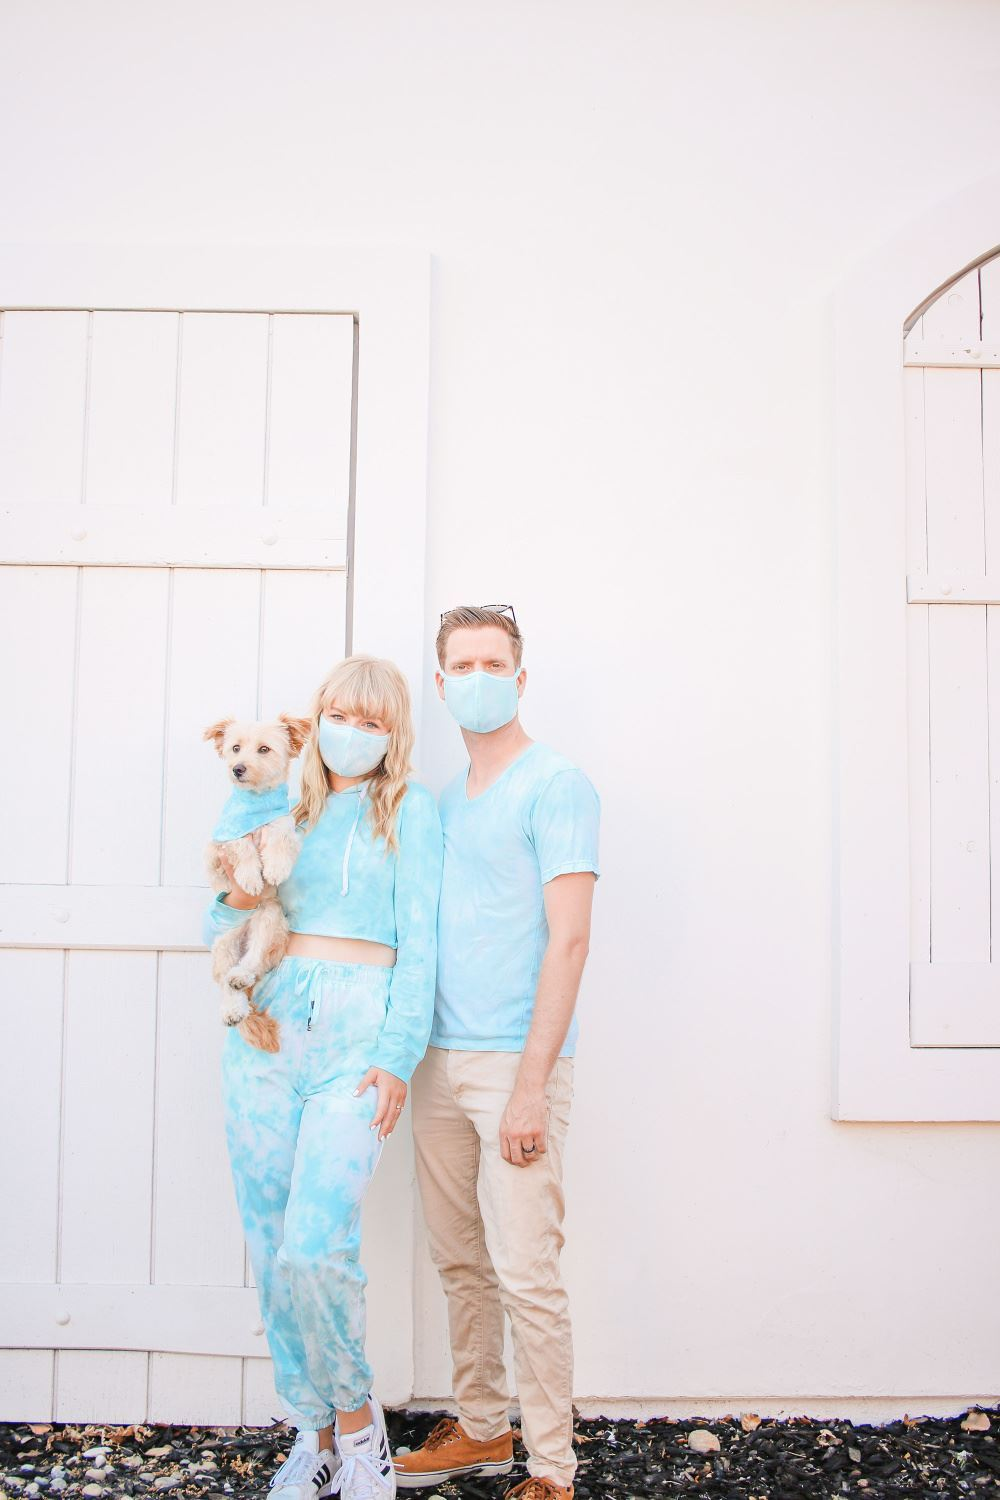 Matching tie-dye outfits and masks